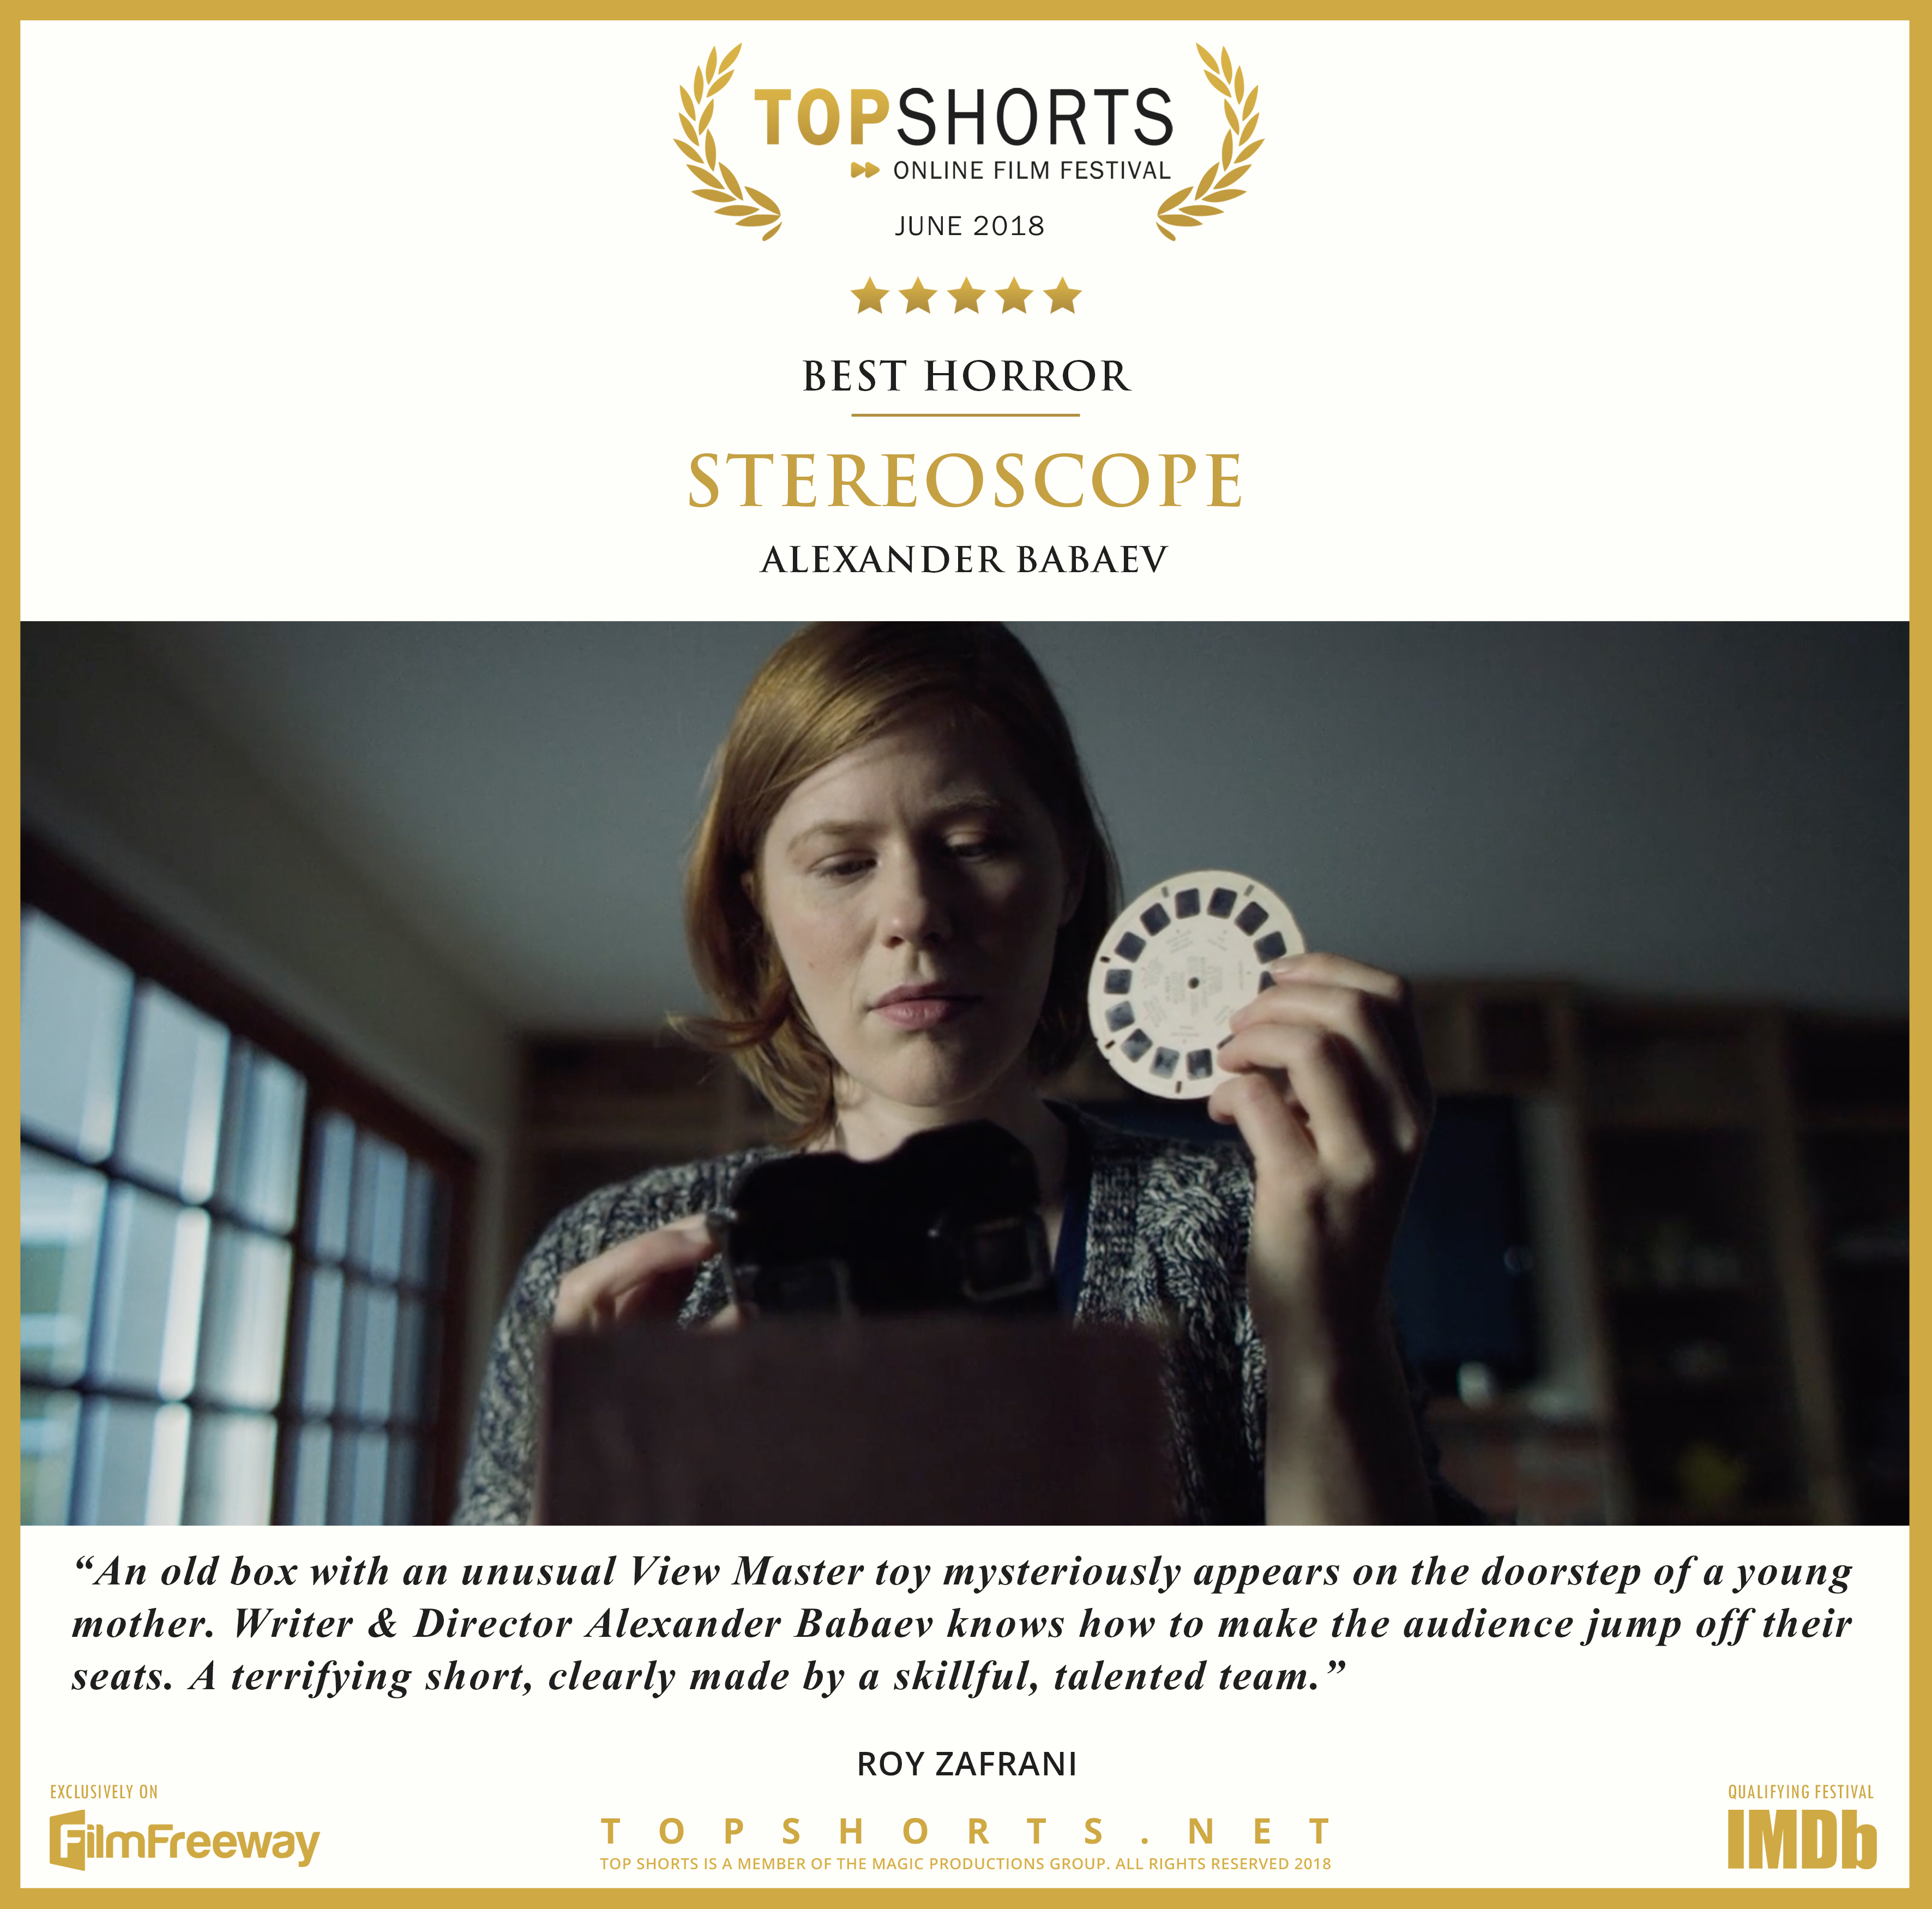 2018 06 Best Horror - Stereoscope